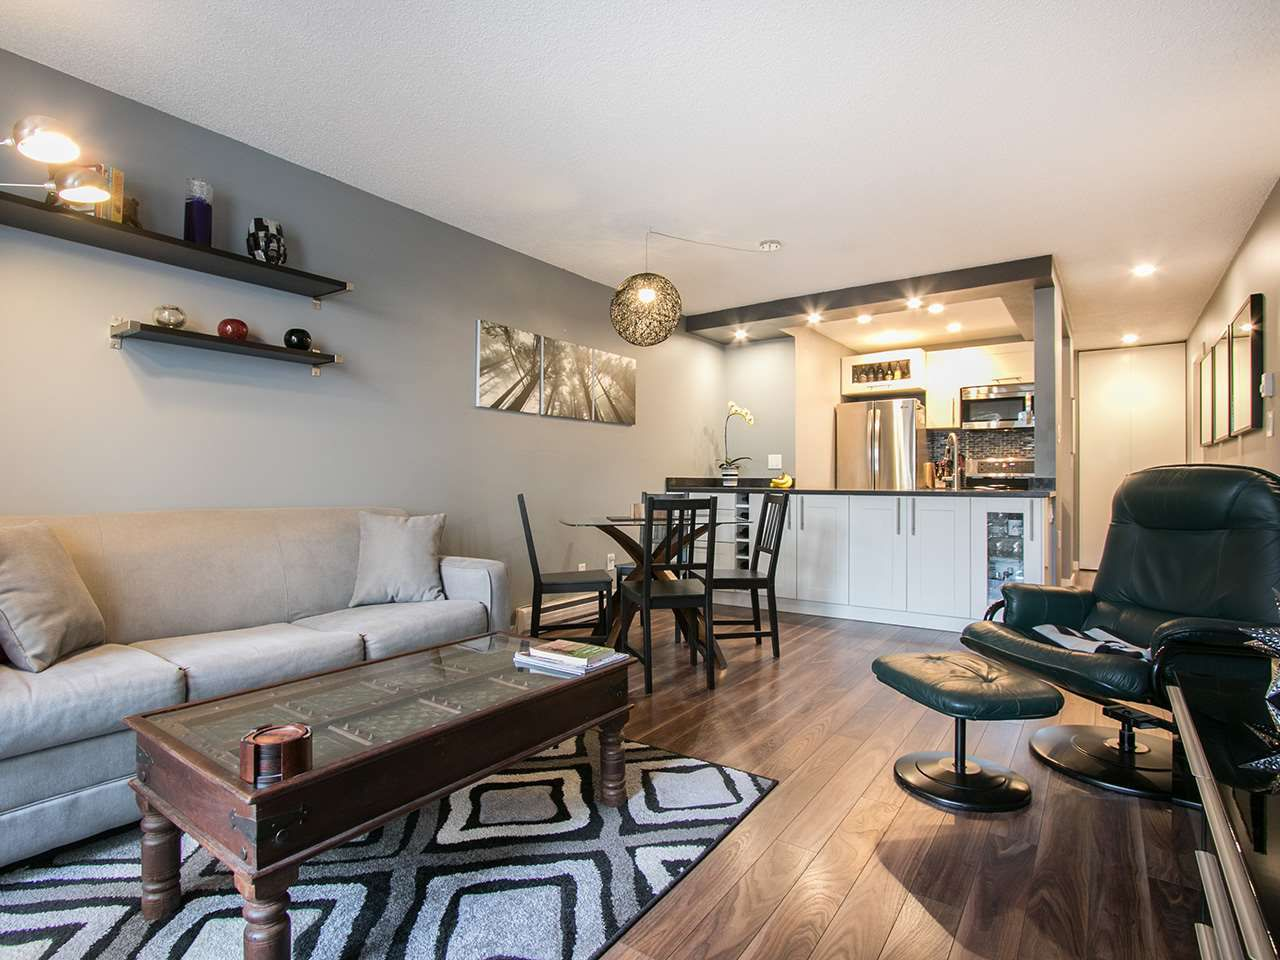 Main Photo: 101 1775 W 10TH AVENUE in Vancouver: Fairview VW Condo for sale (Vancouver West)  : MLS®# R2038742